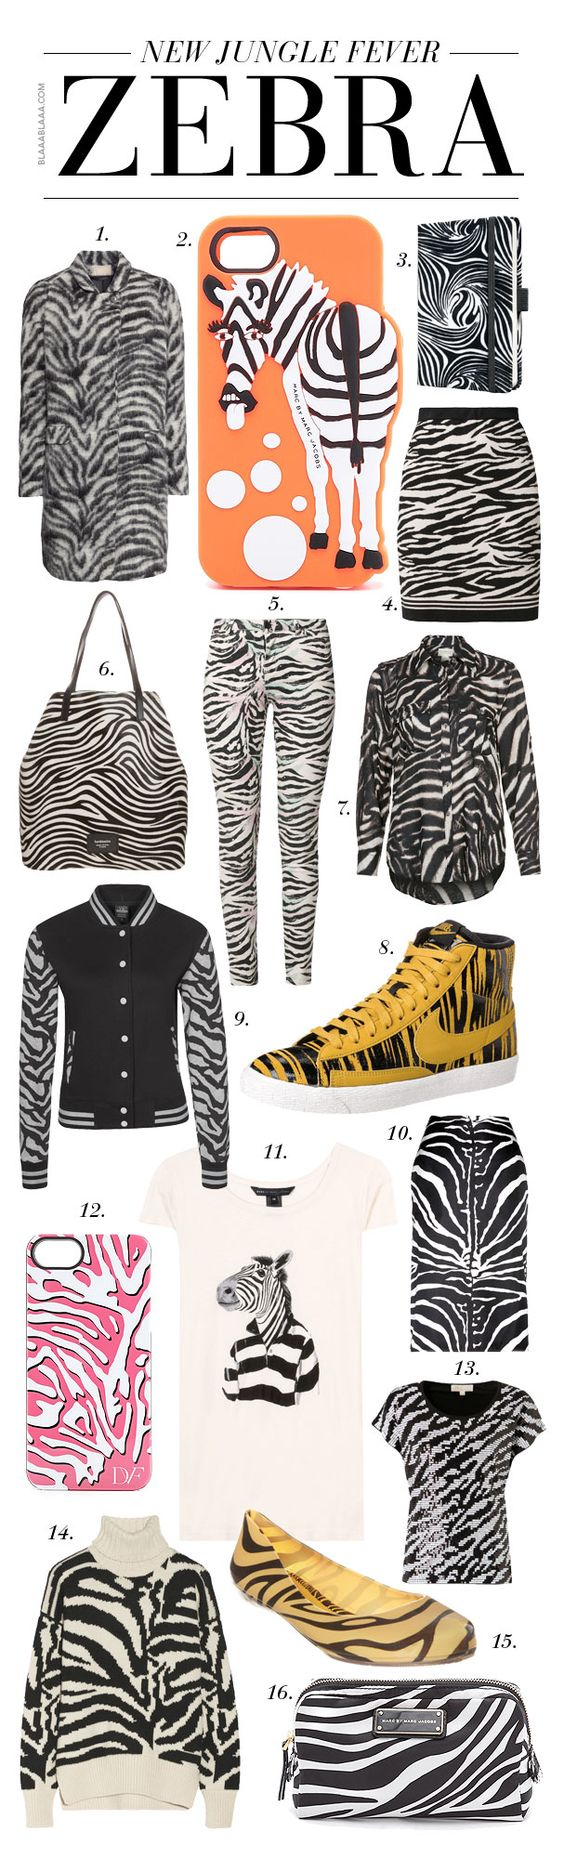 Trendalarm: Zebra – The New Jungle Fever!